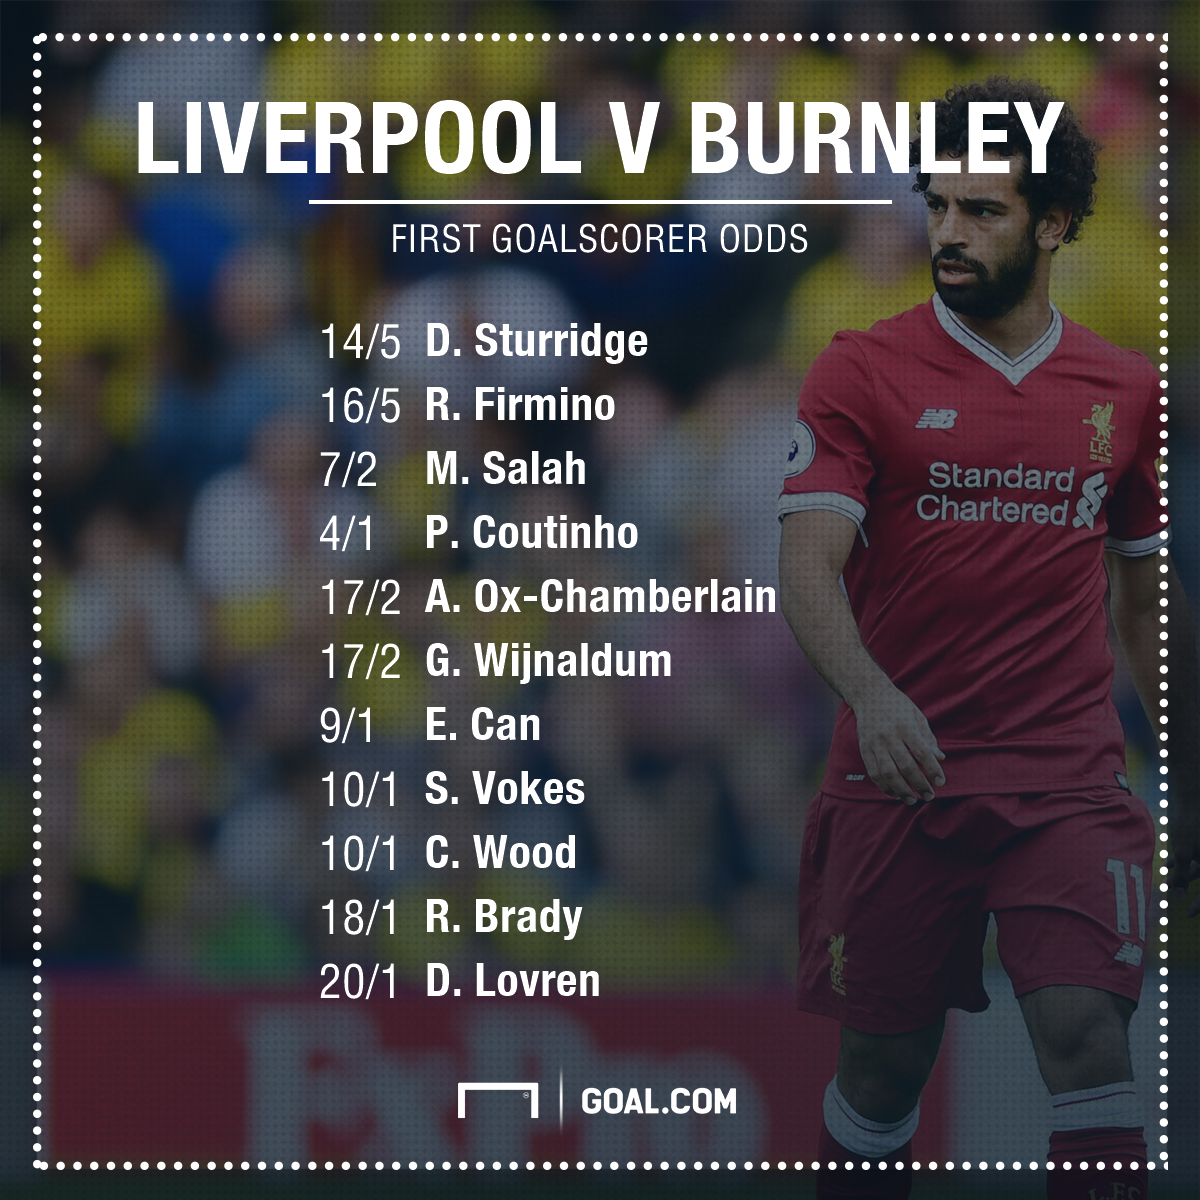 Liverpool v Burnley